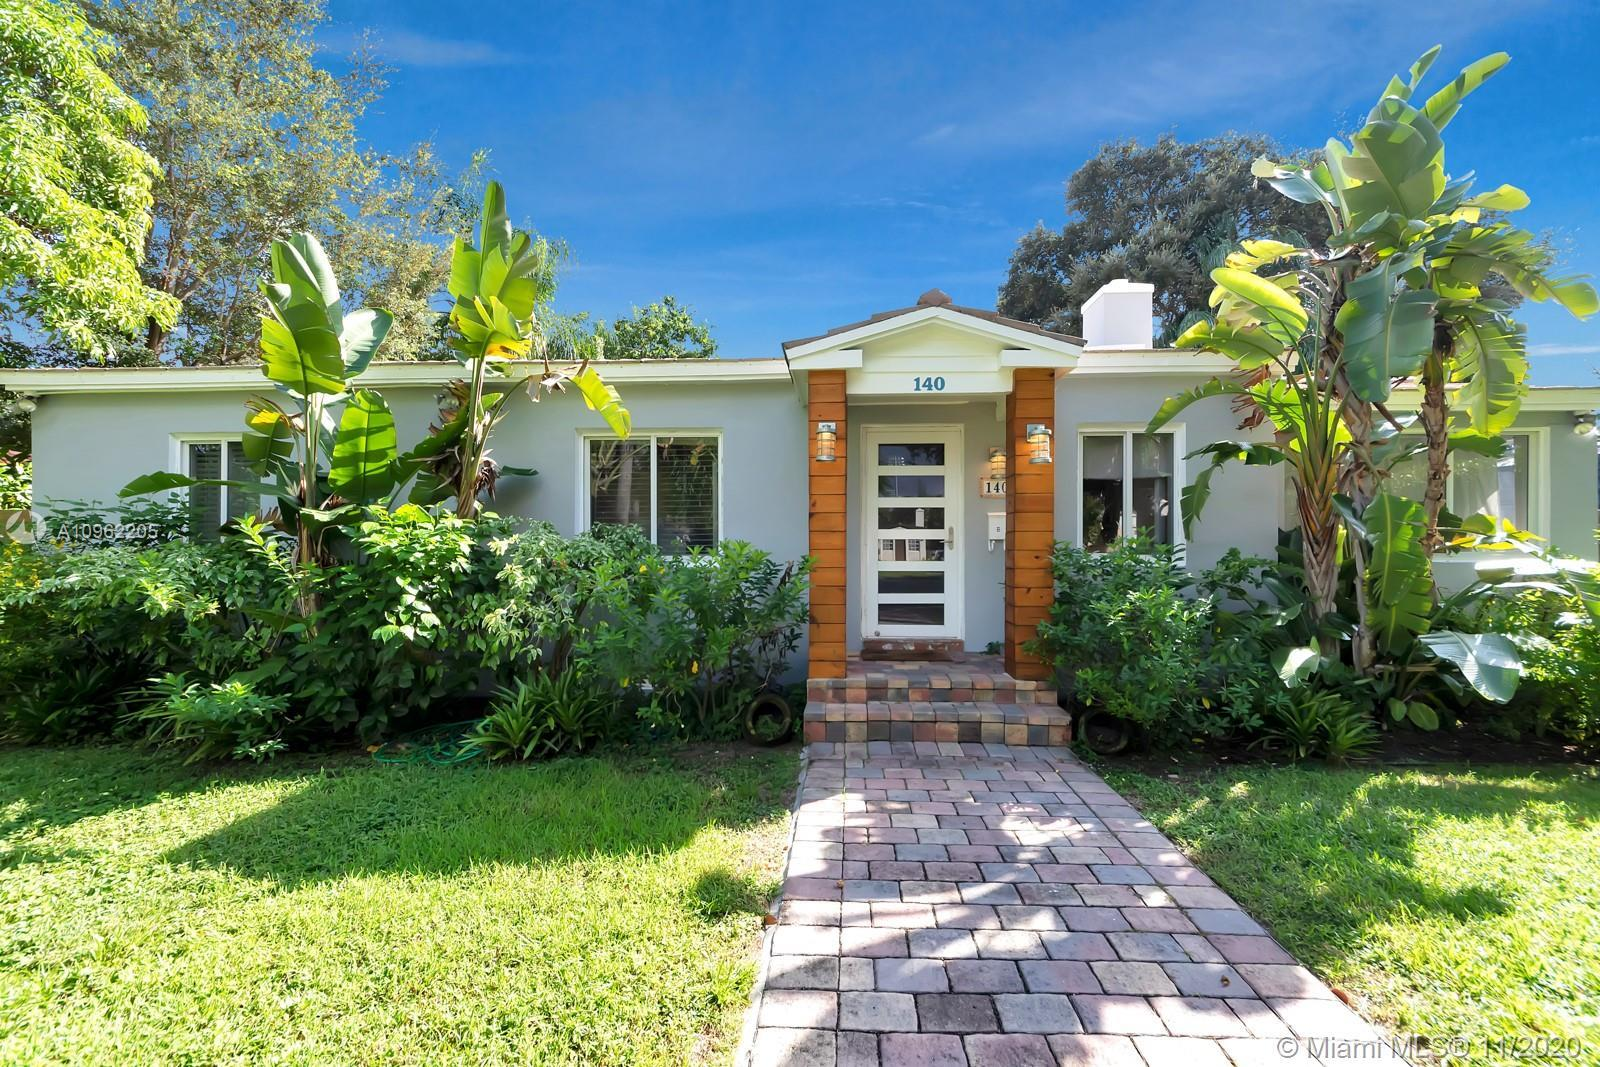 Turn key Miami Shores masterpiece ready for you to call it home! This 4/2 pool home will satisfy you